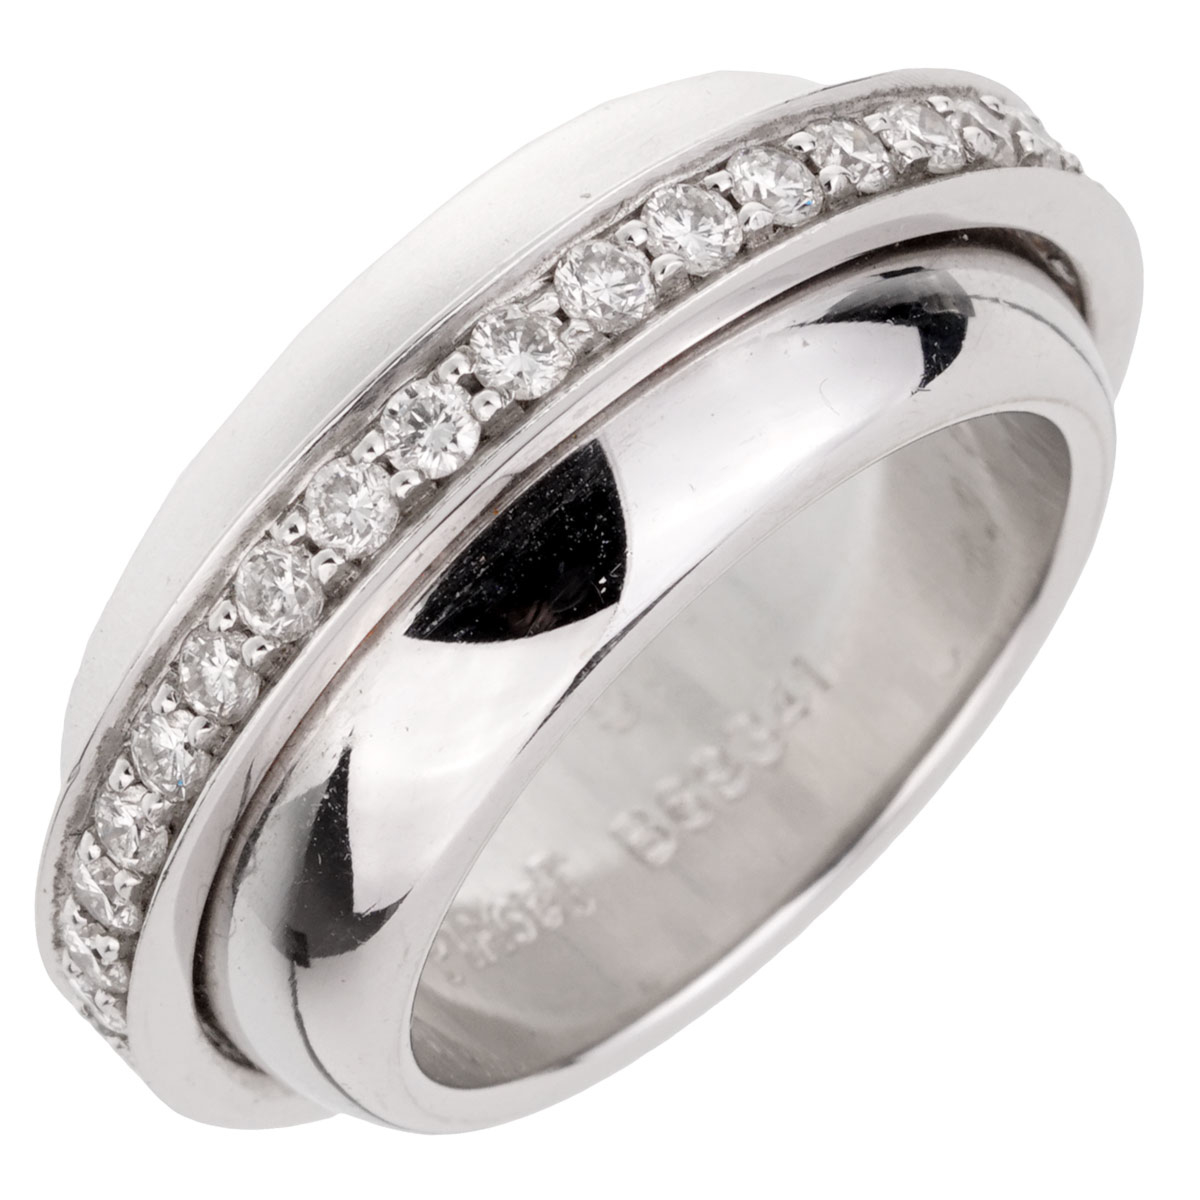 Piaget Possession White Gold Diamond Ring Sz 5 1/2 - Piaget Jewelry